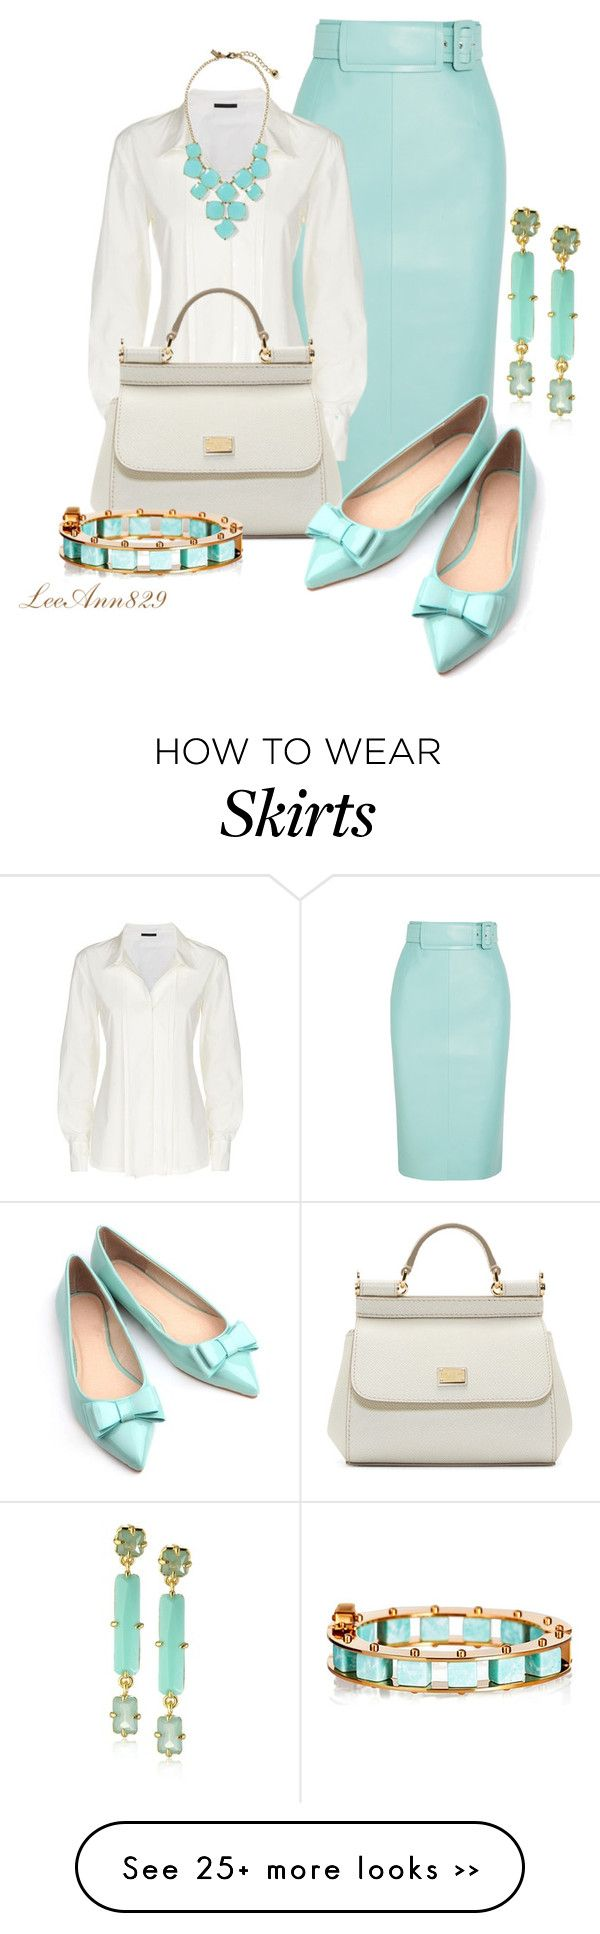 """""""leather pencil skirt for fall"""" by leeann829 on Polyvore featuring мода, Balenciaga, Donna Karan, Kate Spade, Dolce&Gabbana, Vince Camuto и Lele Sadoughi"""